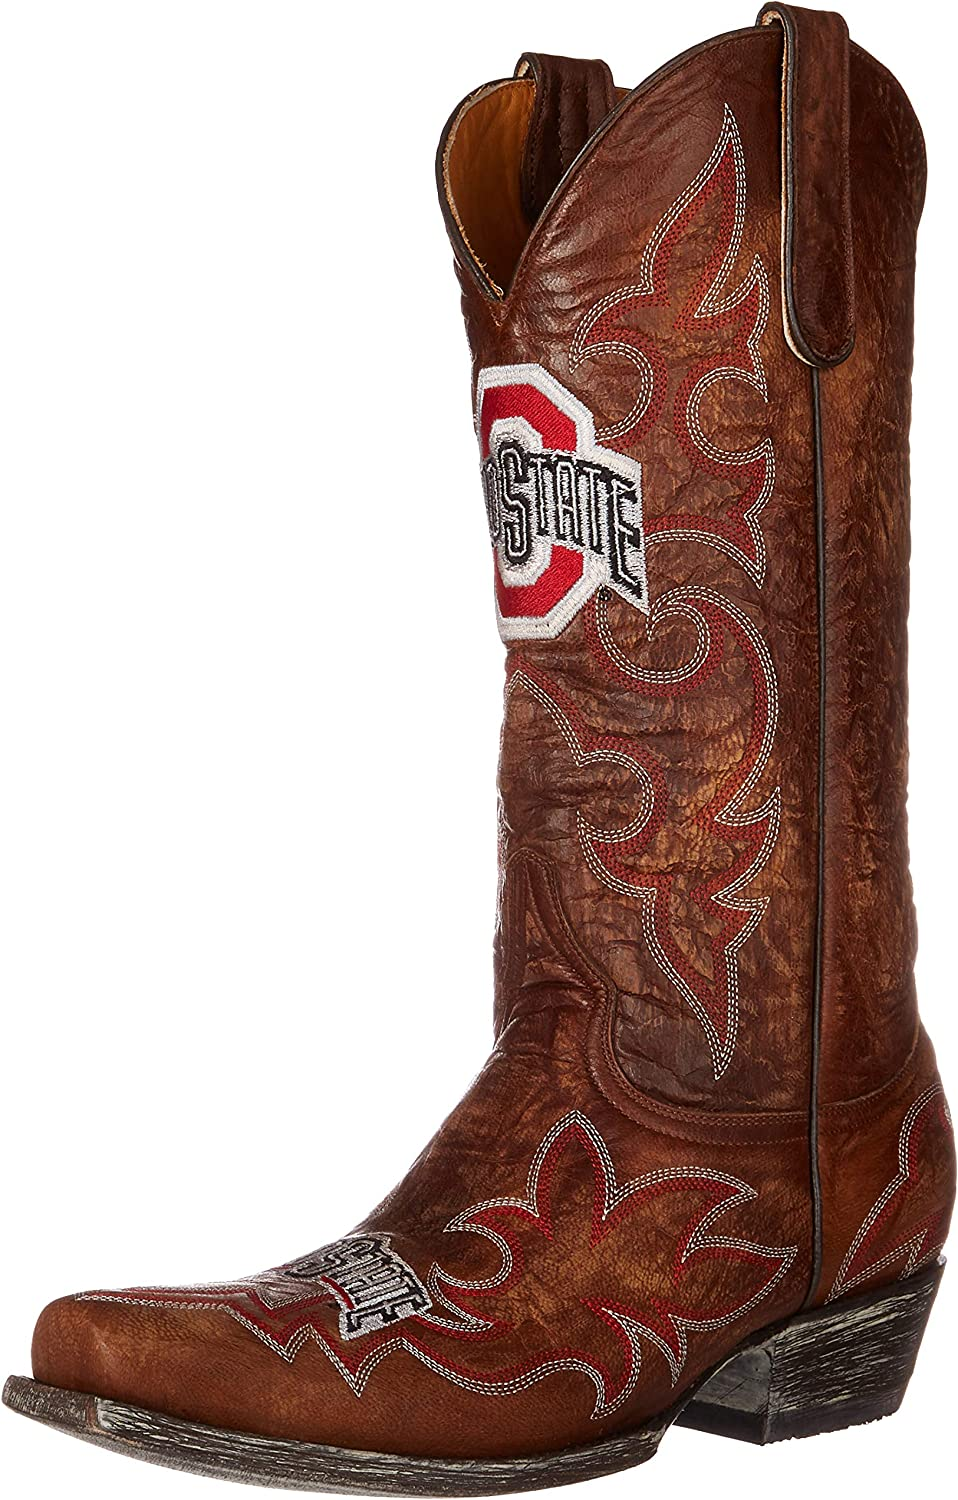 NCAA Ohio State Buckeyes Men's Gameday Boots